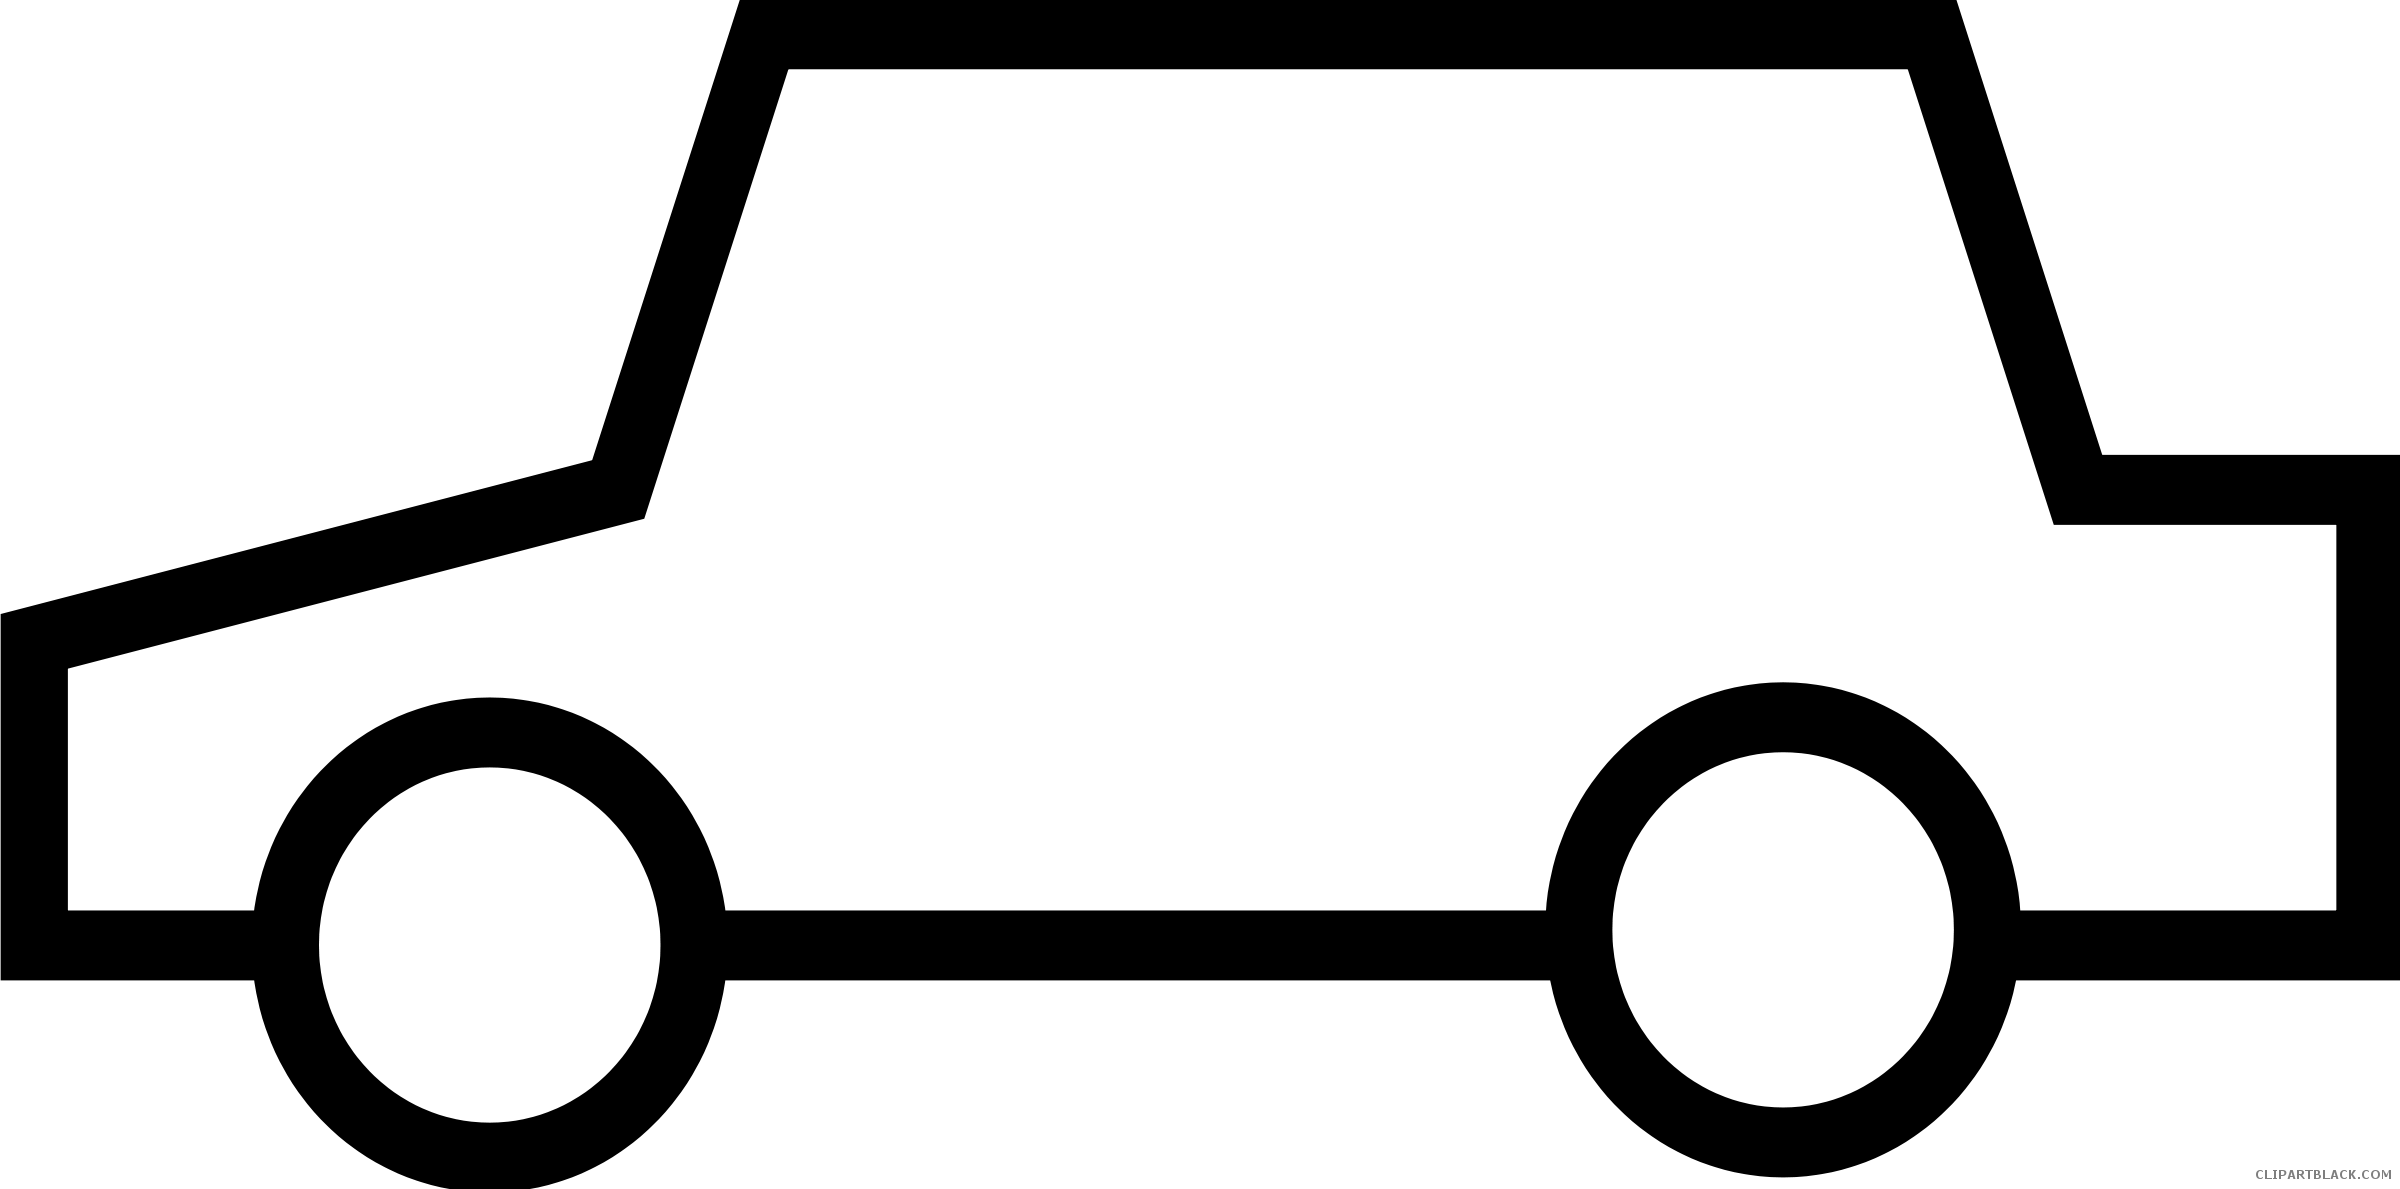 Car on road clipart black and white clipart free download Car Outline Clipart - ClipartBlack.com clipart free download